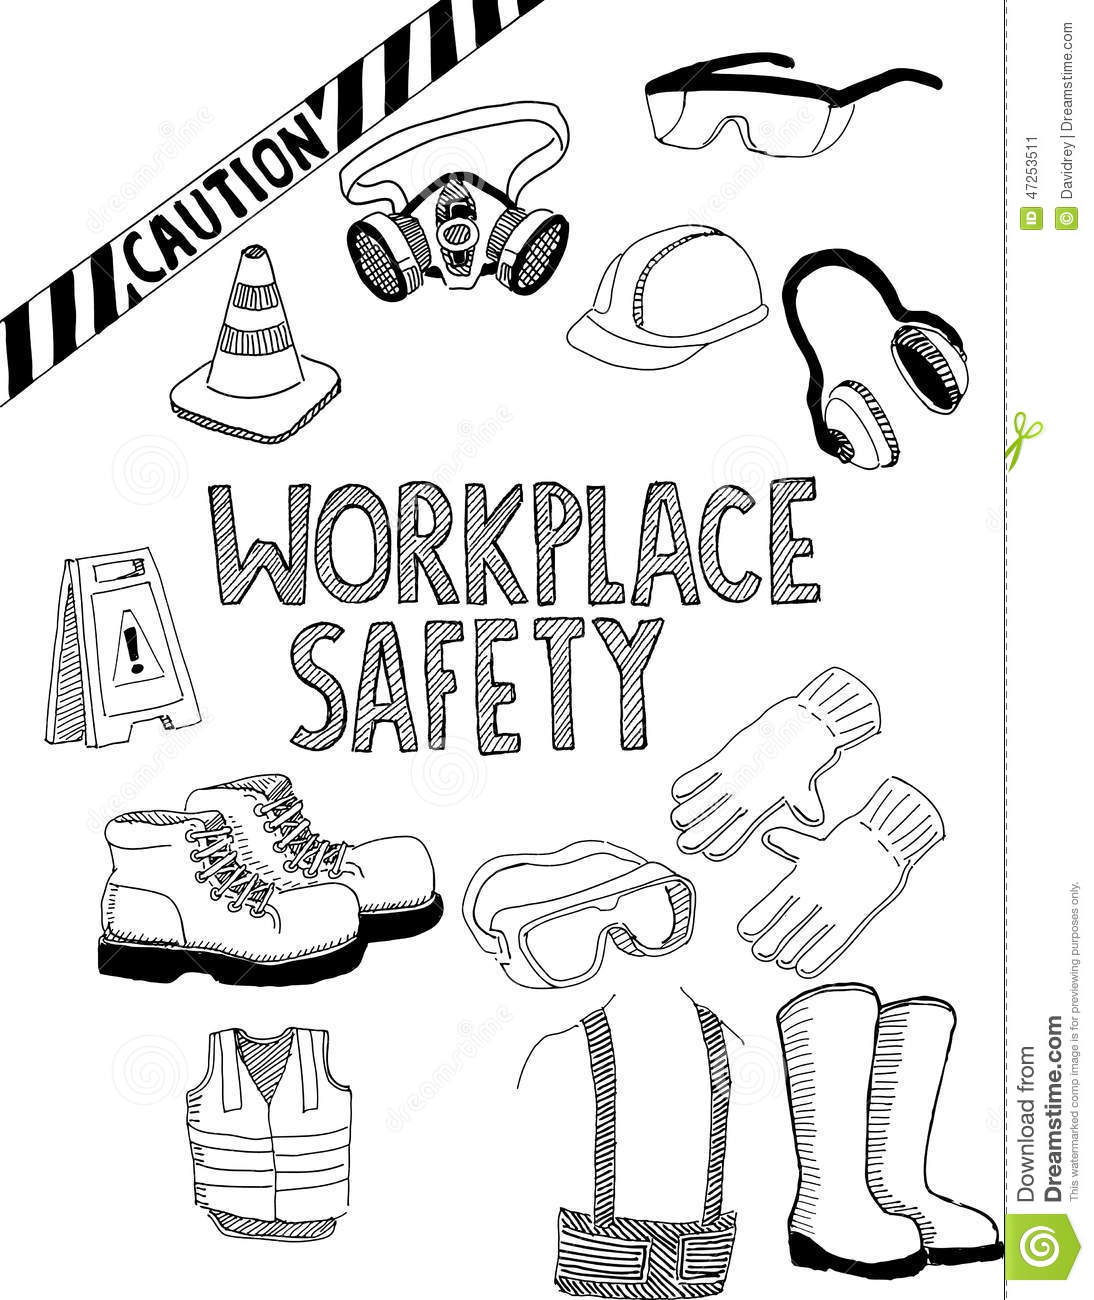 Workplace Safety Gear Stock Vector Illustration Of Gear